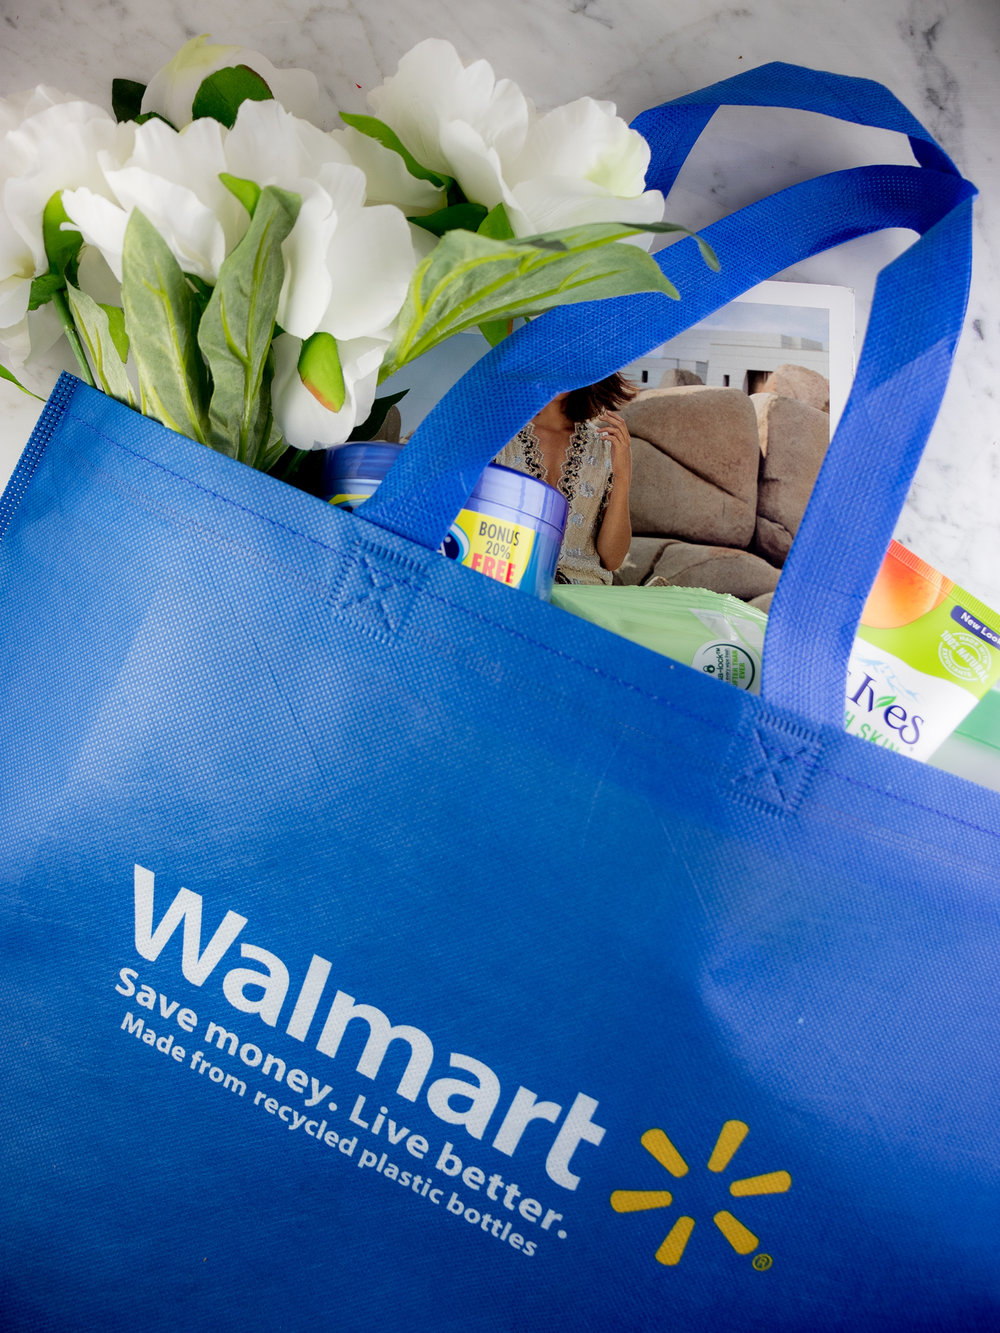 Skin Care Products from Walmart